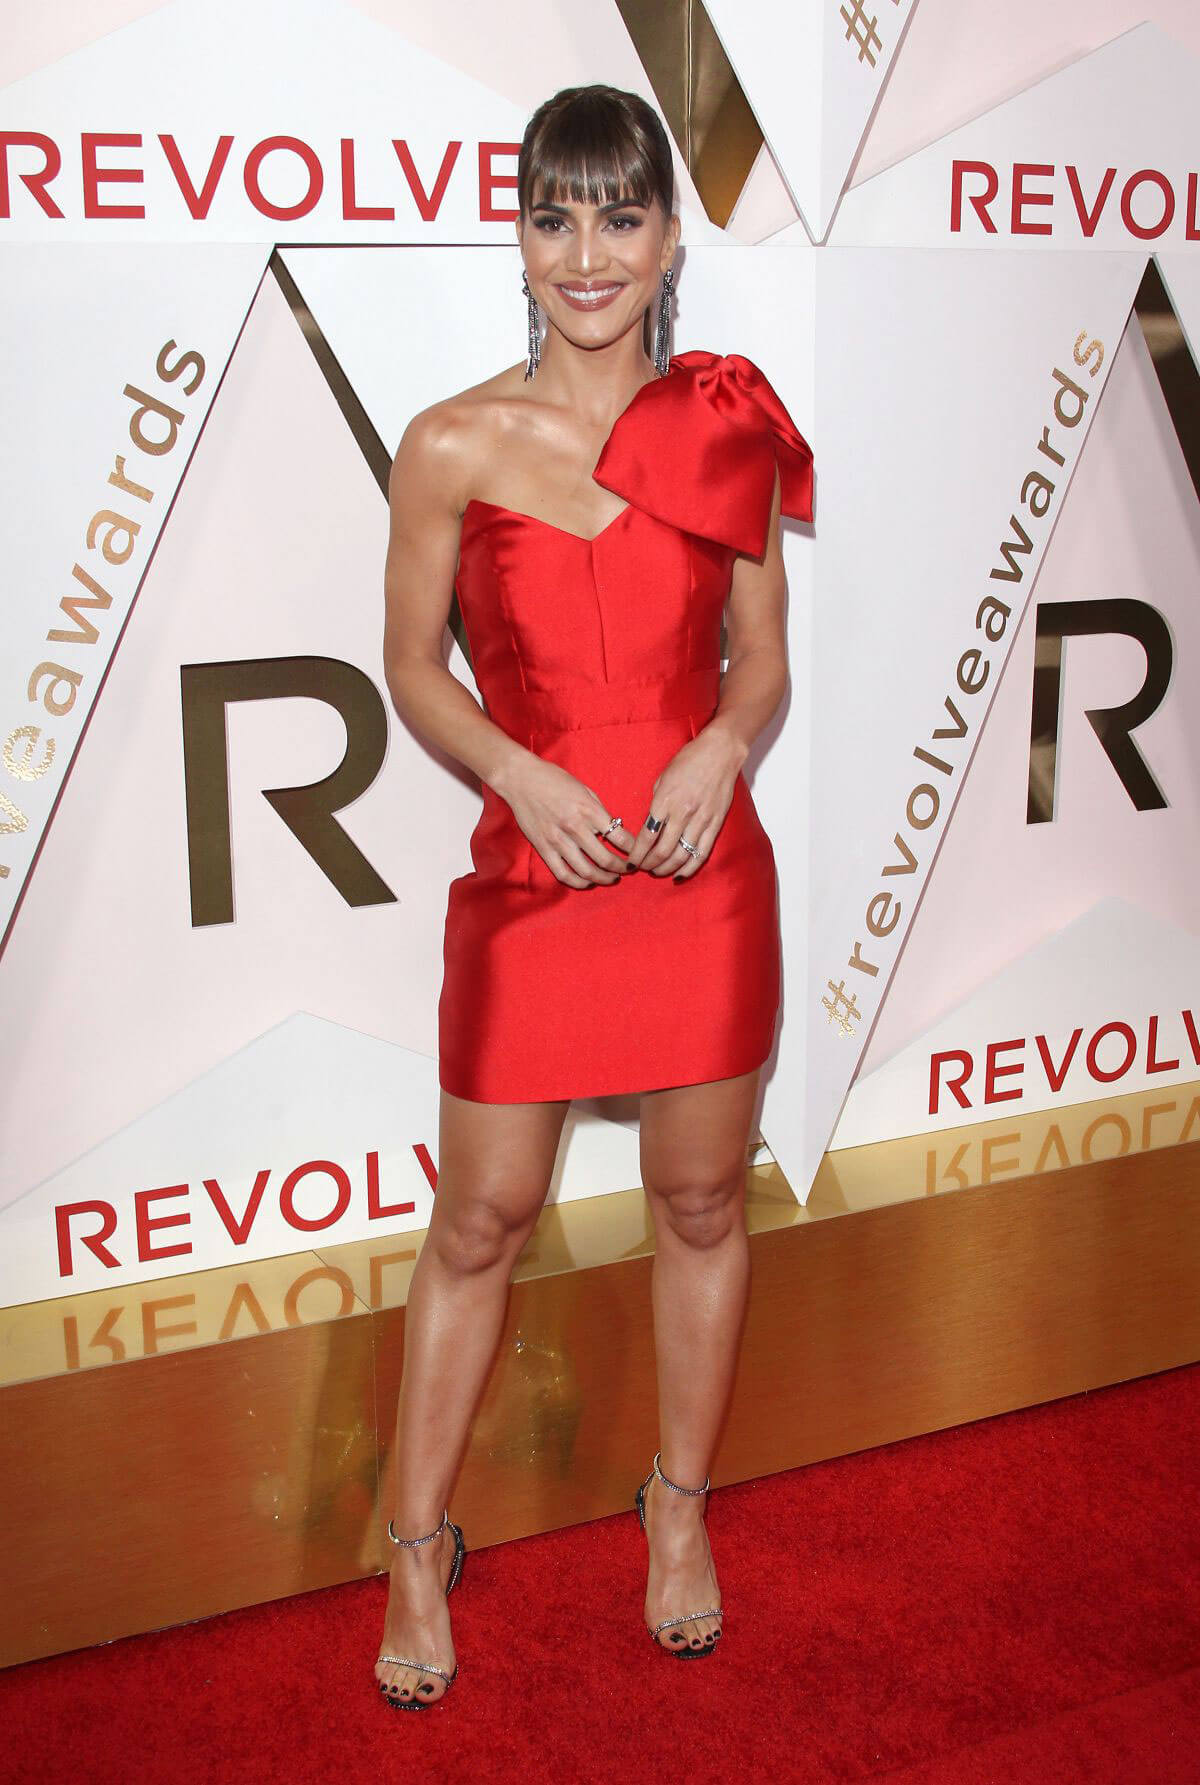 Camila Coelho wears One Shoulder Red Dress at #revolveawards in Hollywood